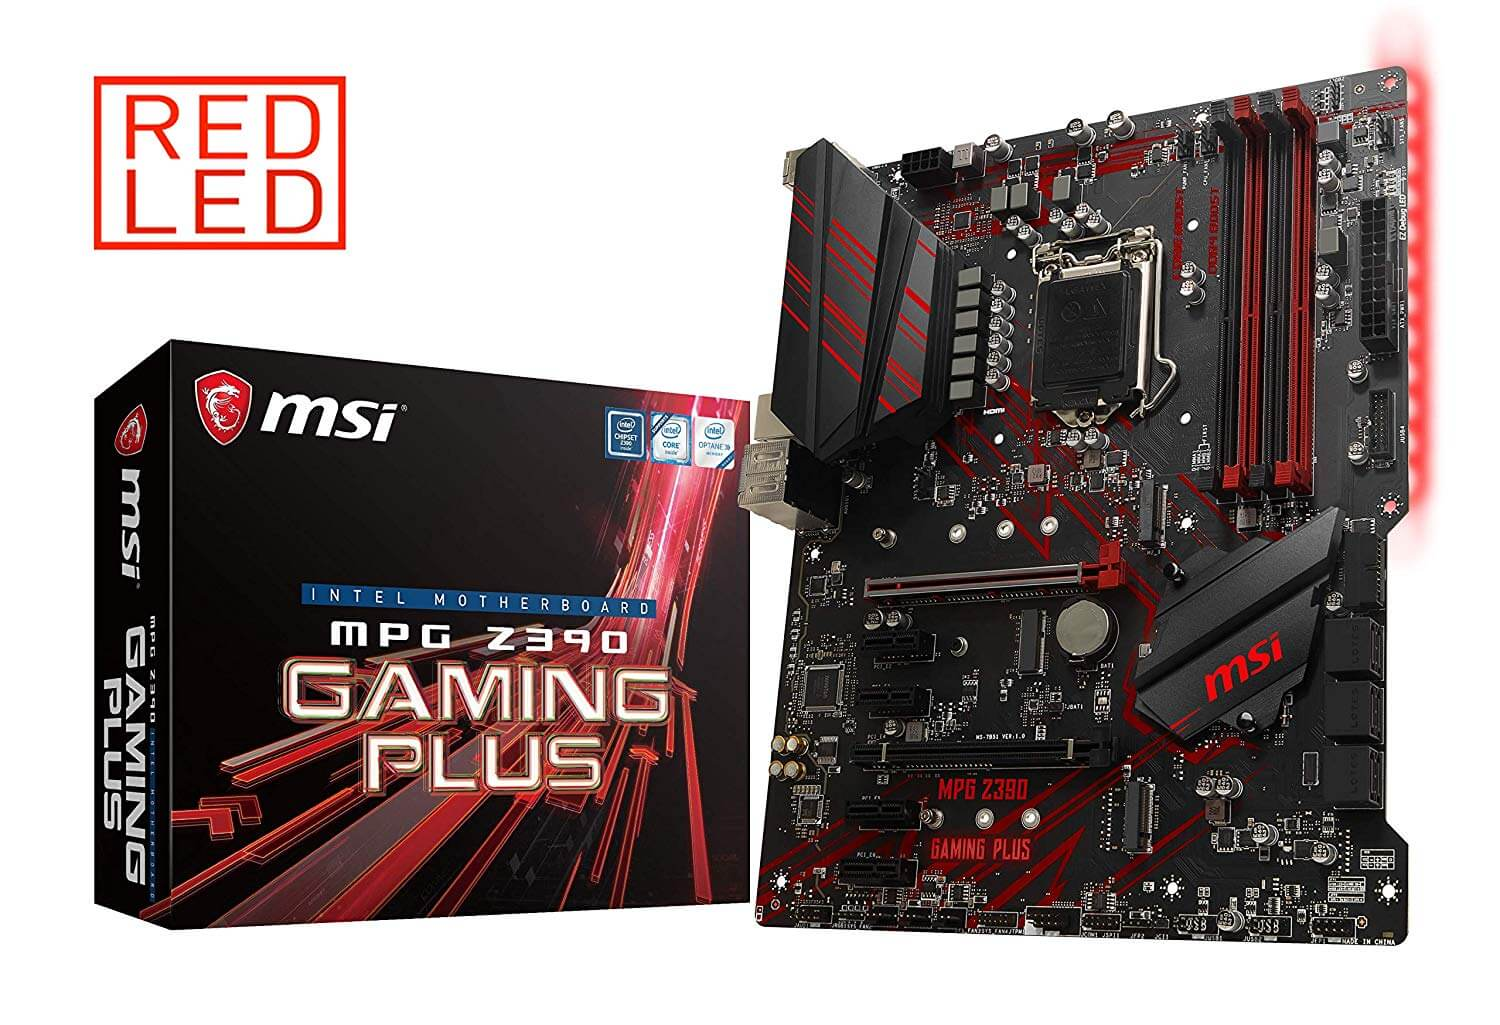 MSI MPG Z390-GAMING PLUS, Onboard Video HDMI, DVI, X-Fire, GB LAN,  USB 3.1 2nd, USB-C